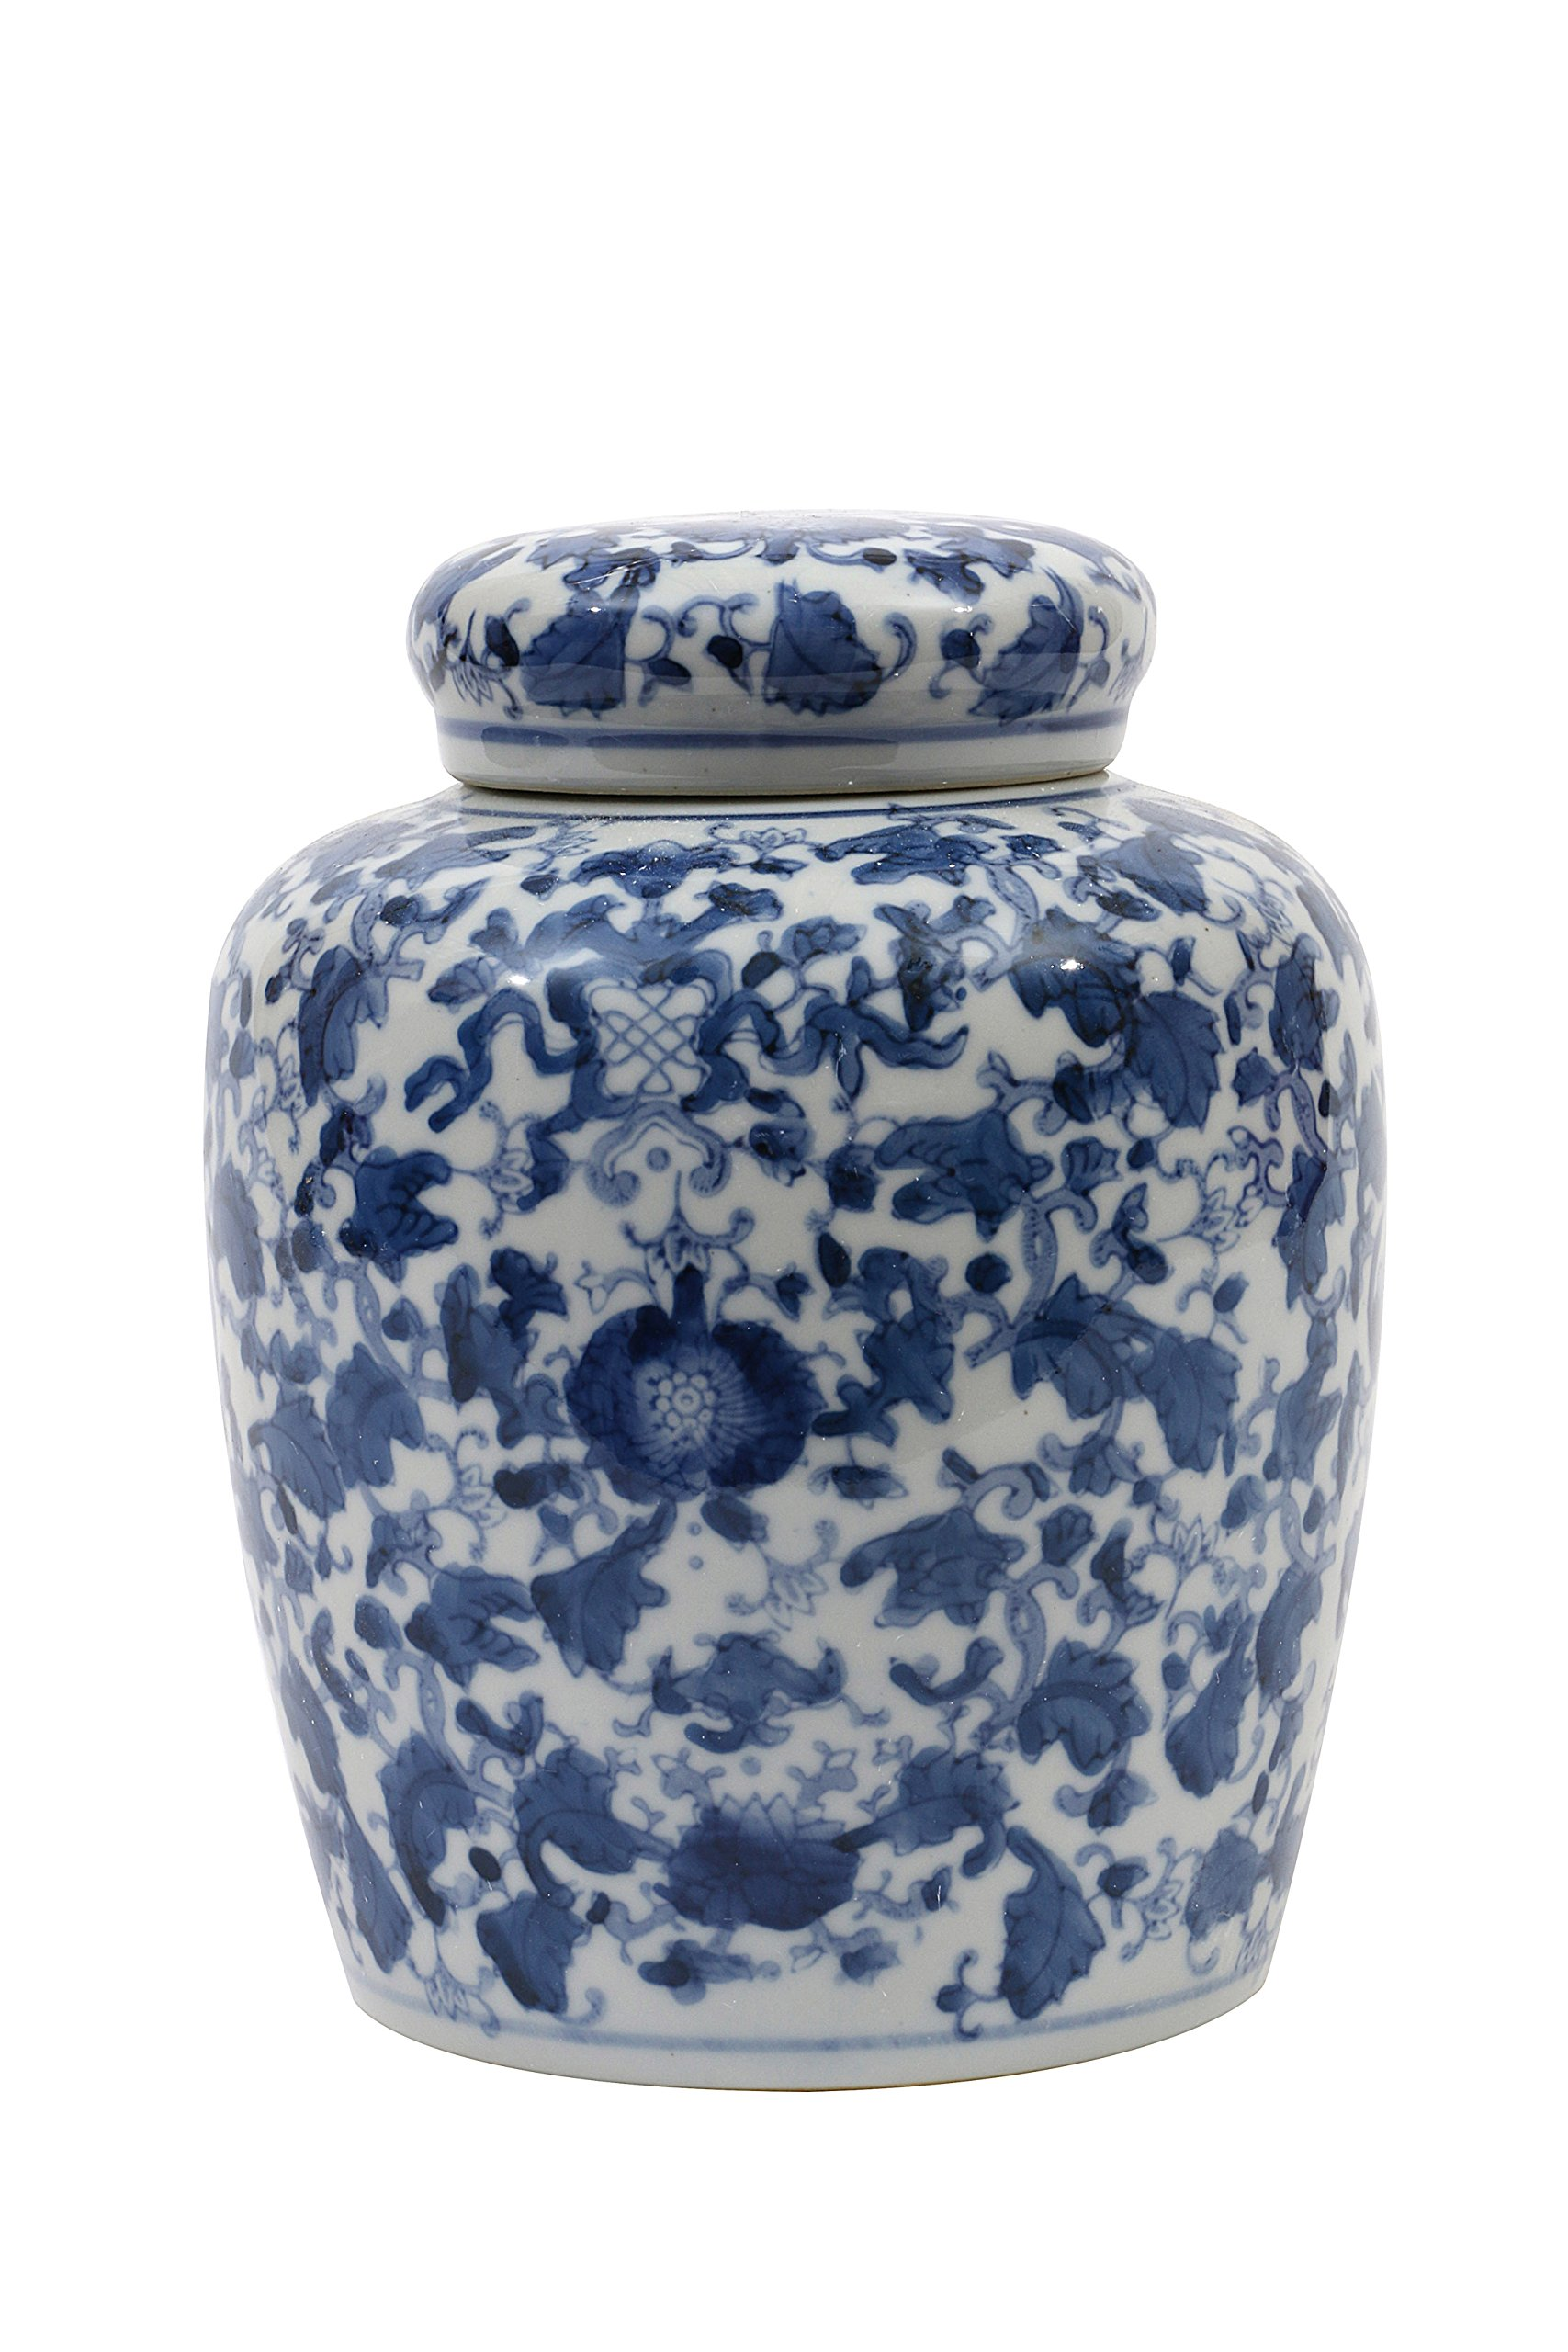 Creative Co-op Decorative Blue and White Ceramic Ginger Jar with Lid